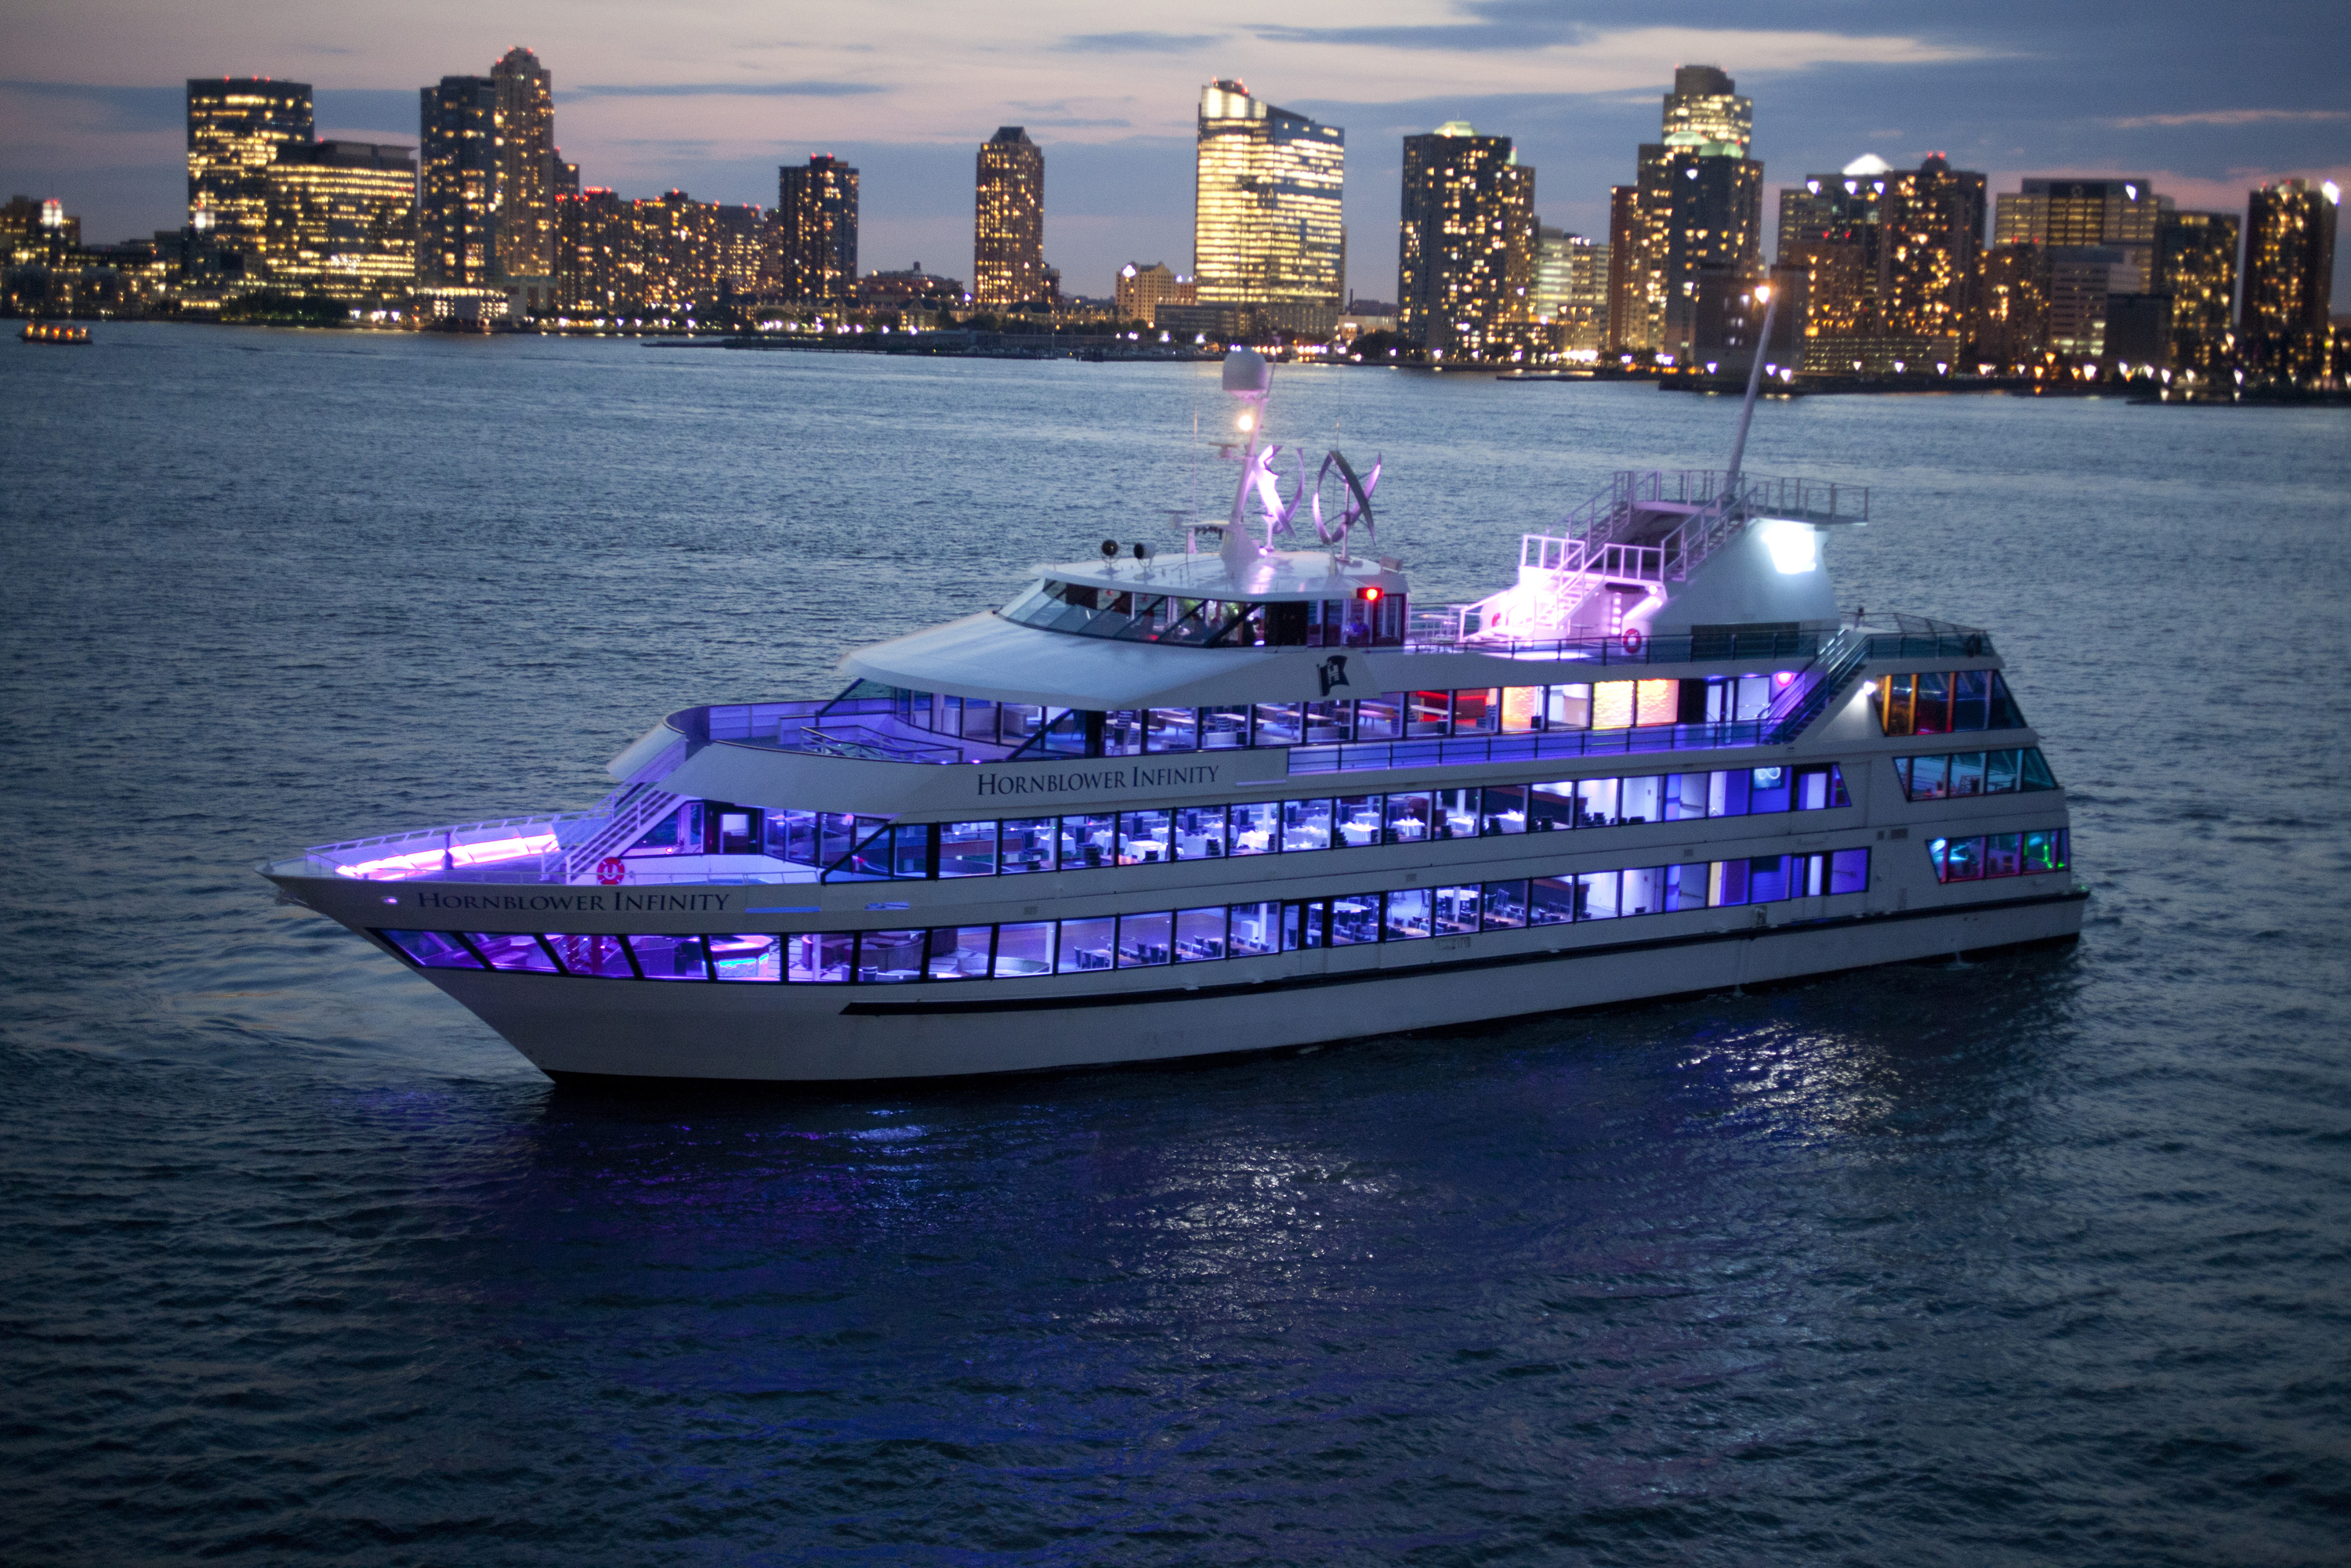 The best boat tours in NYC